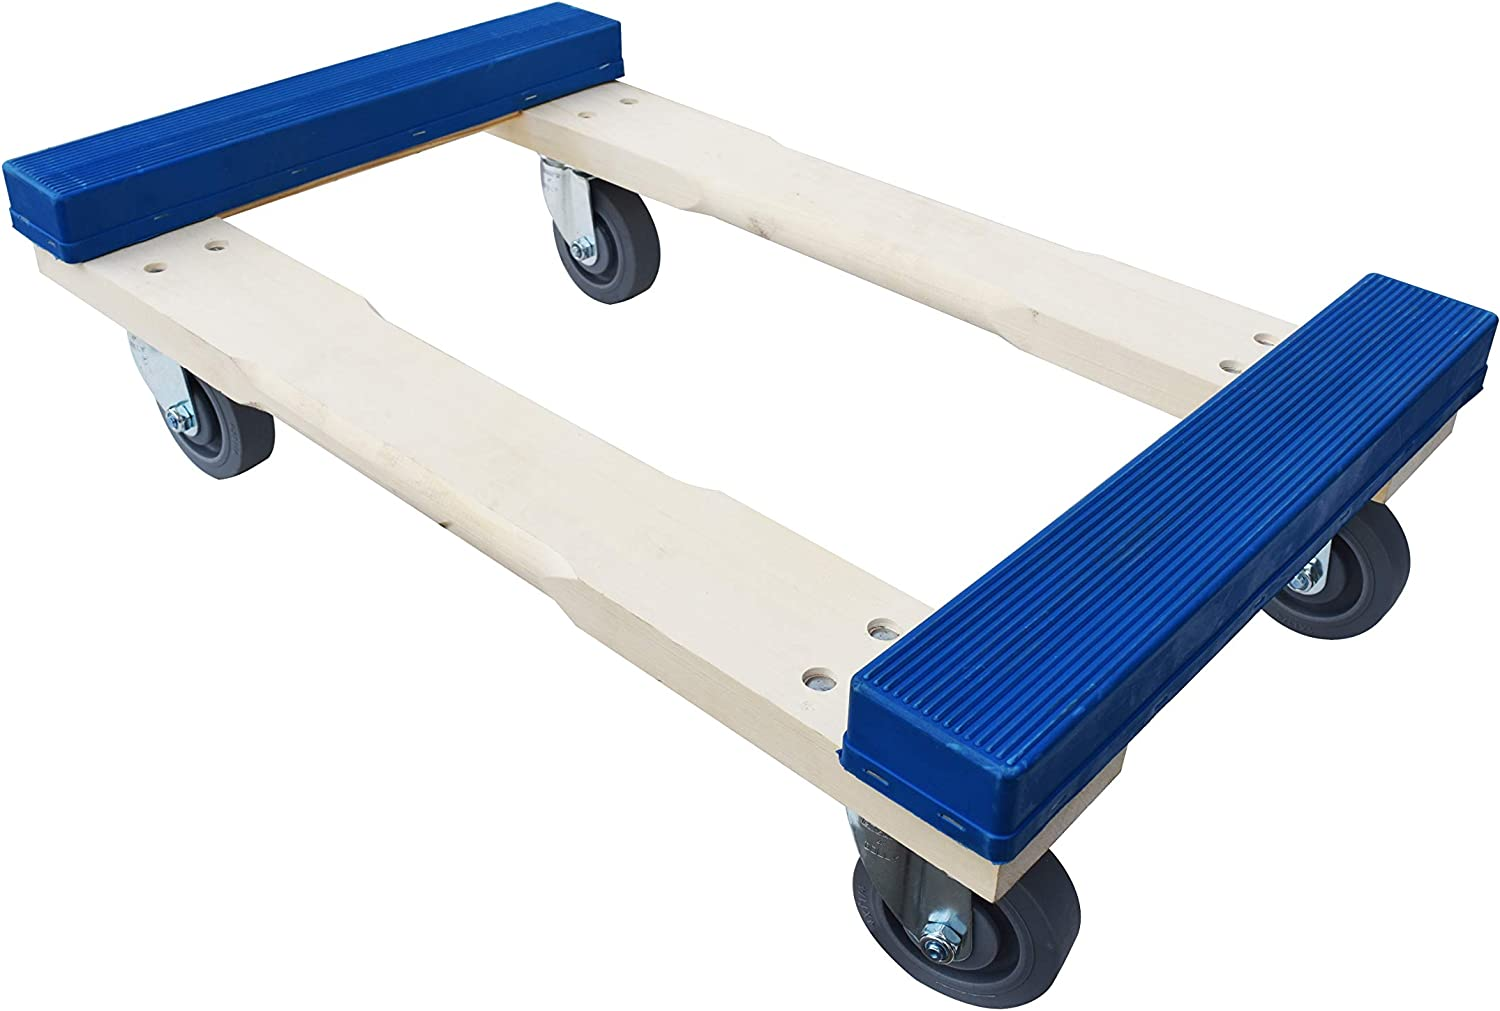 "Forearm Forklift RCTE-C40 Pro Grade Heavy Duty Moving Dolly with with Rubber Caps | 900 Pound Capacity | 18"" x 30"","